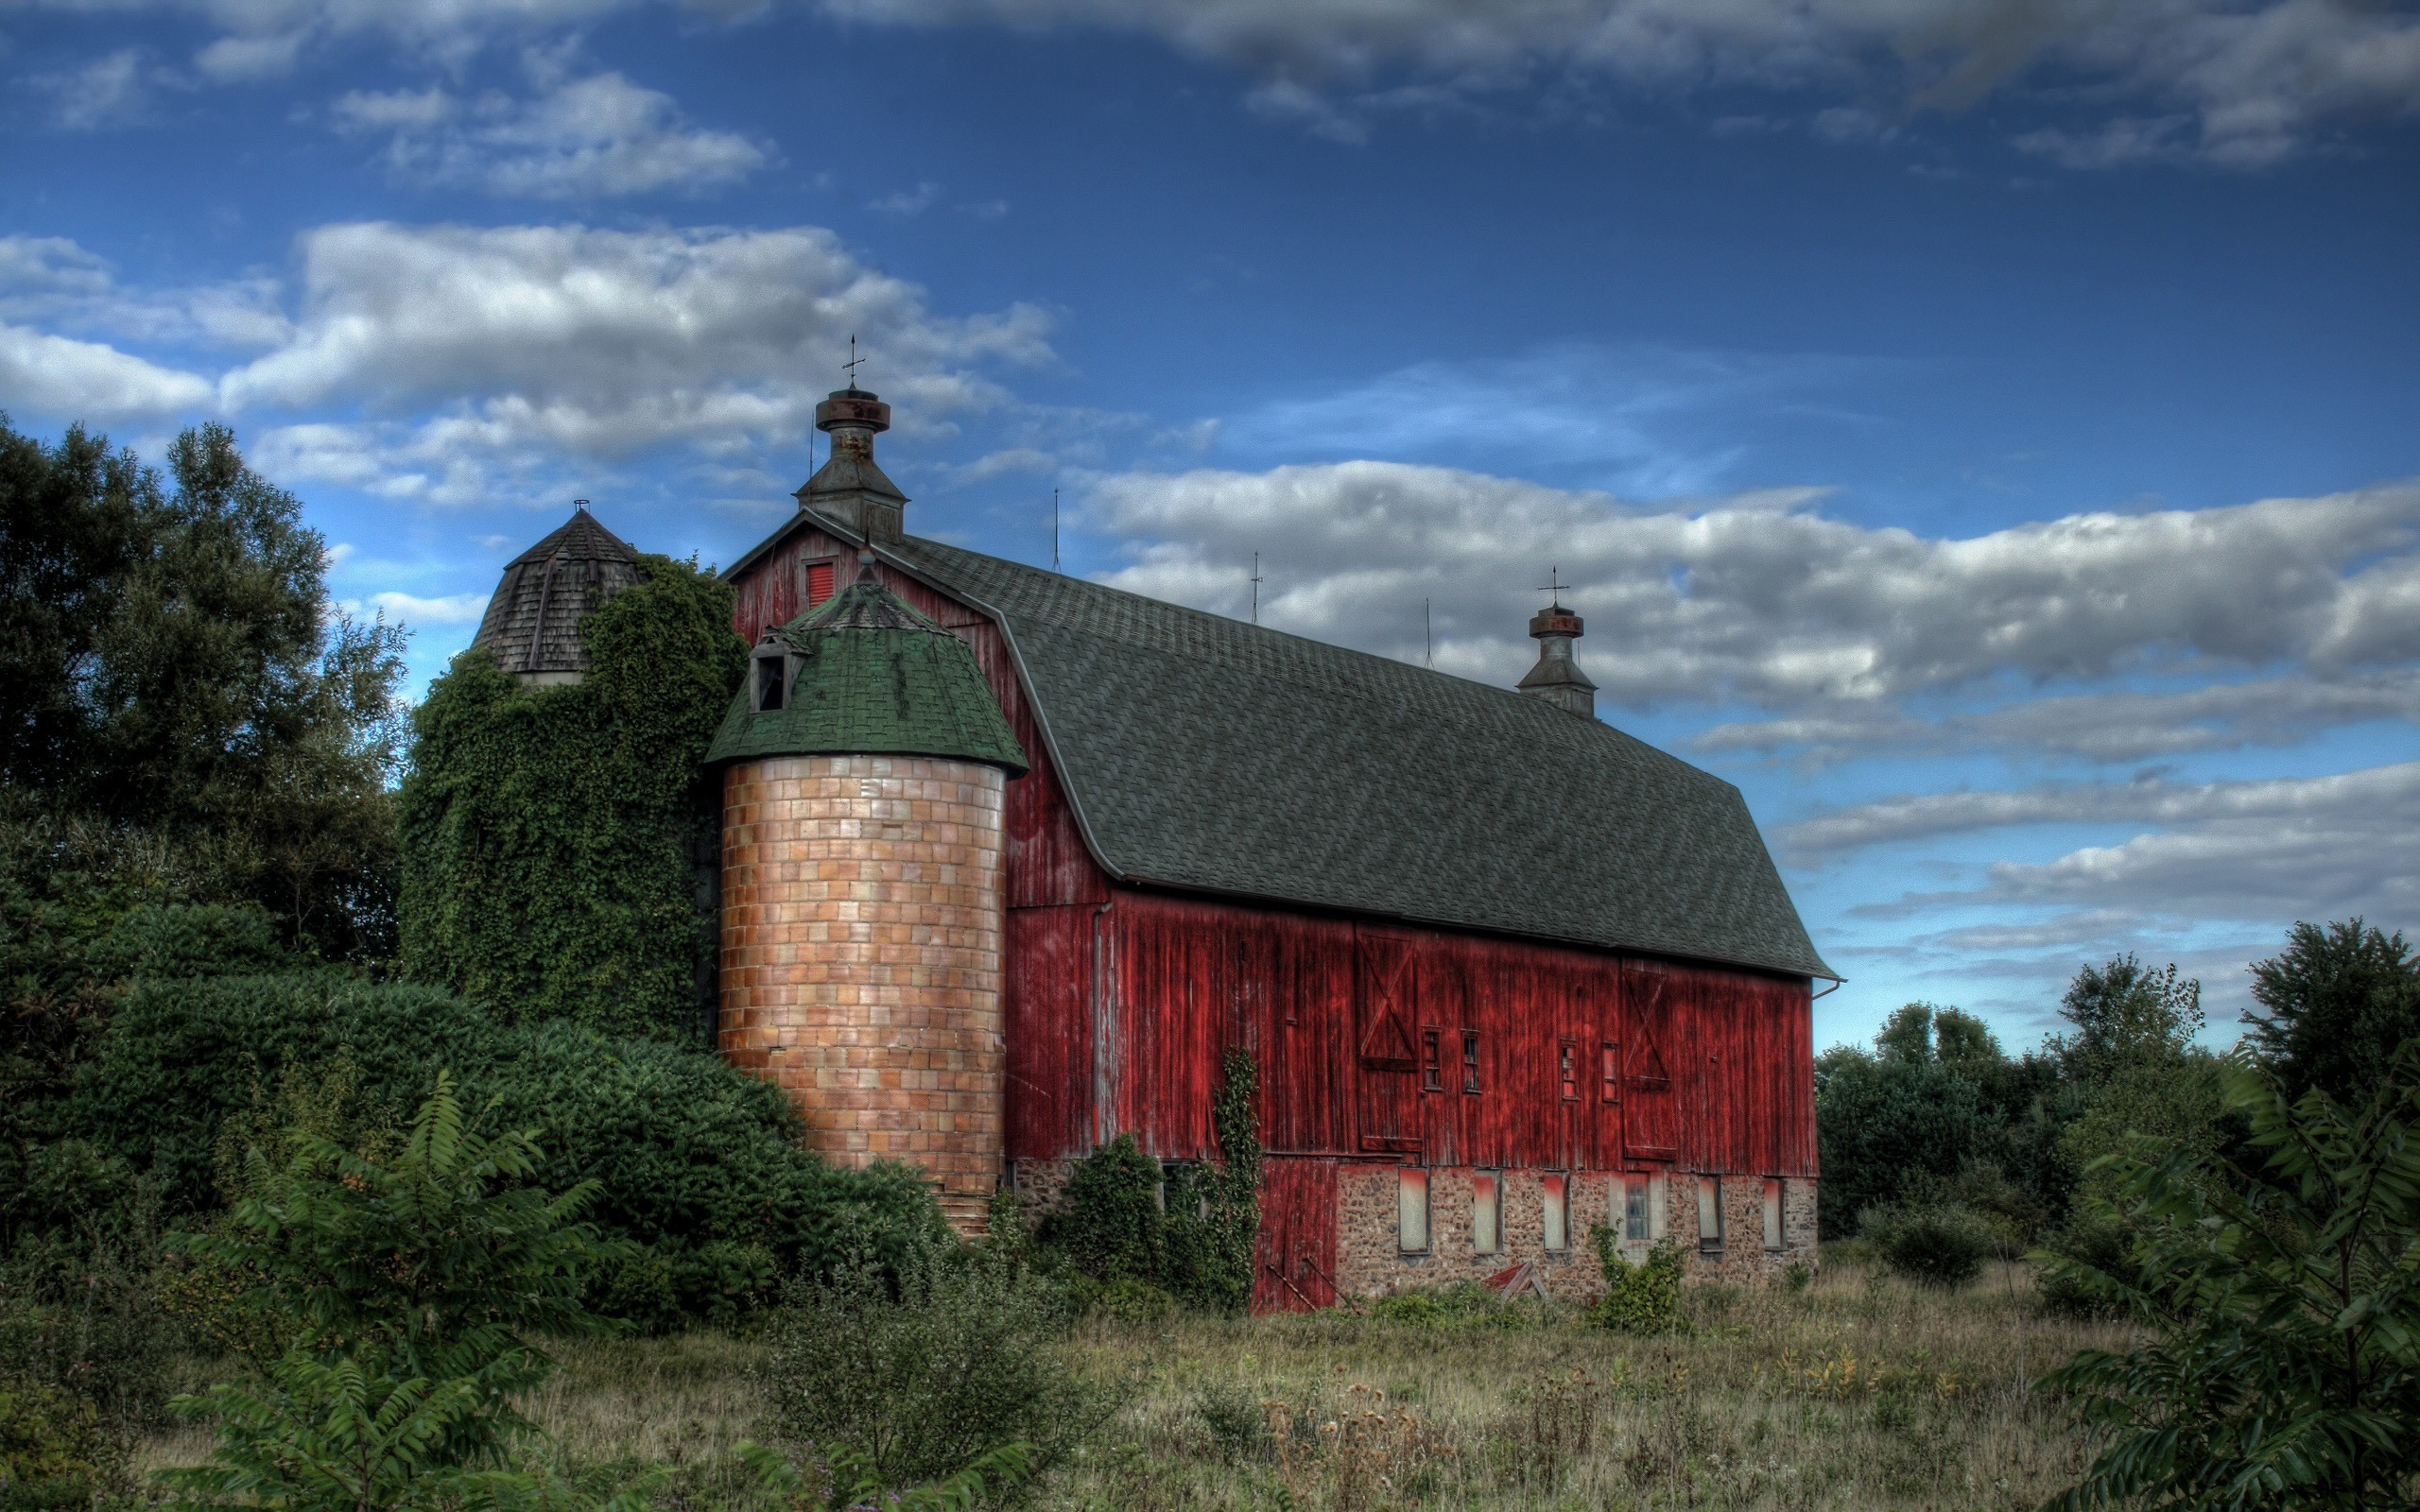 2560x1600 Red barn Wallpaper Miscellaneous Other Wallpapers